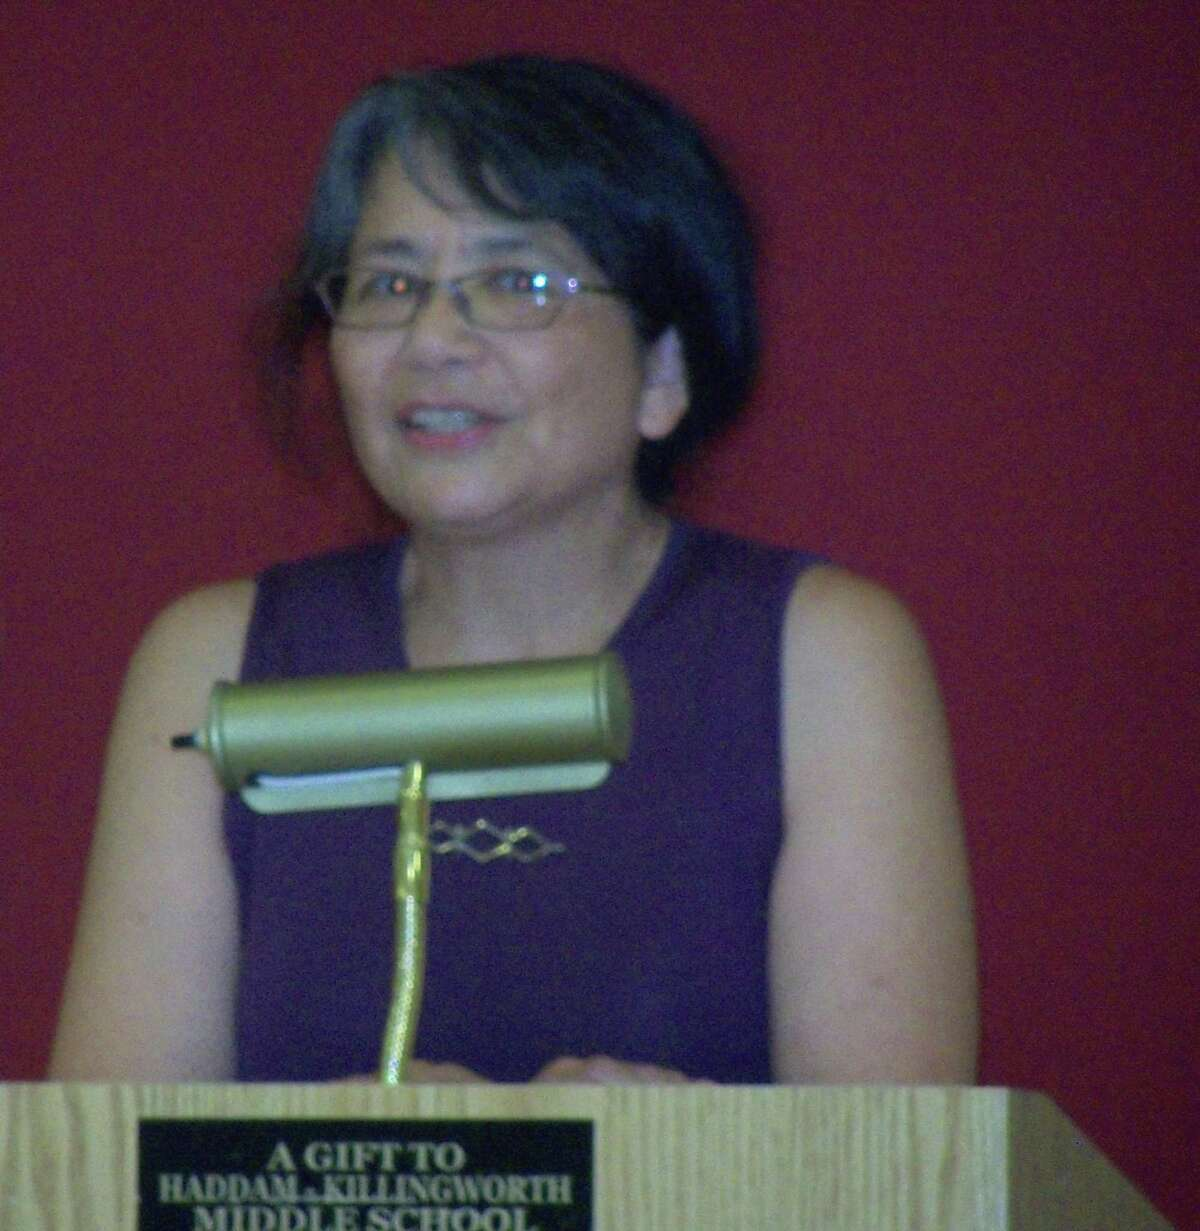 Killingworth First Selectman Catherine Iino accepts the Democratic Town Committee's nomination.